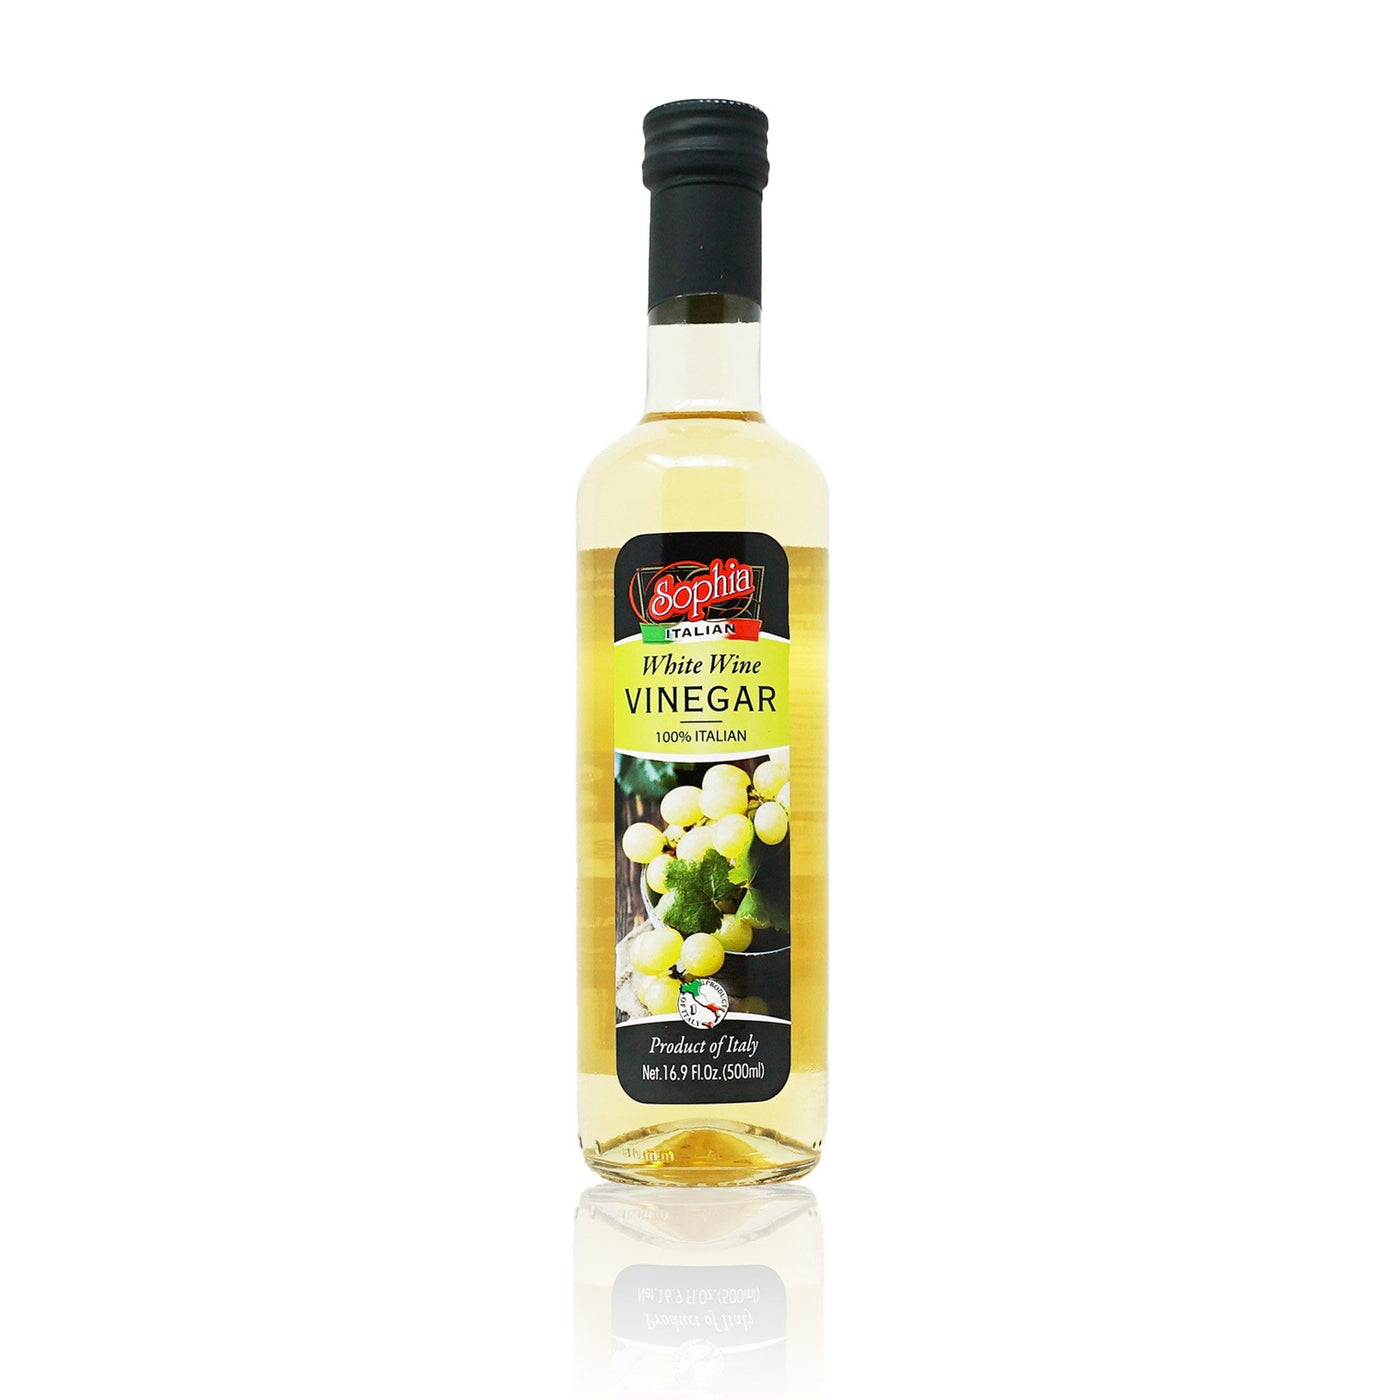 Sophia Vinegar - Italian White Wine Vinegar 16.9oz